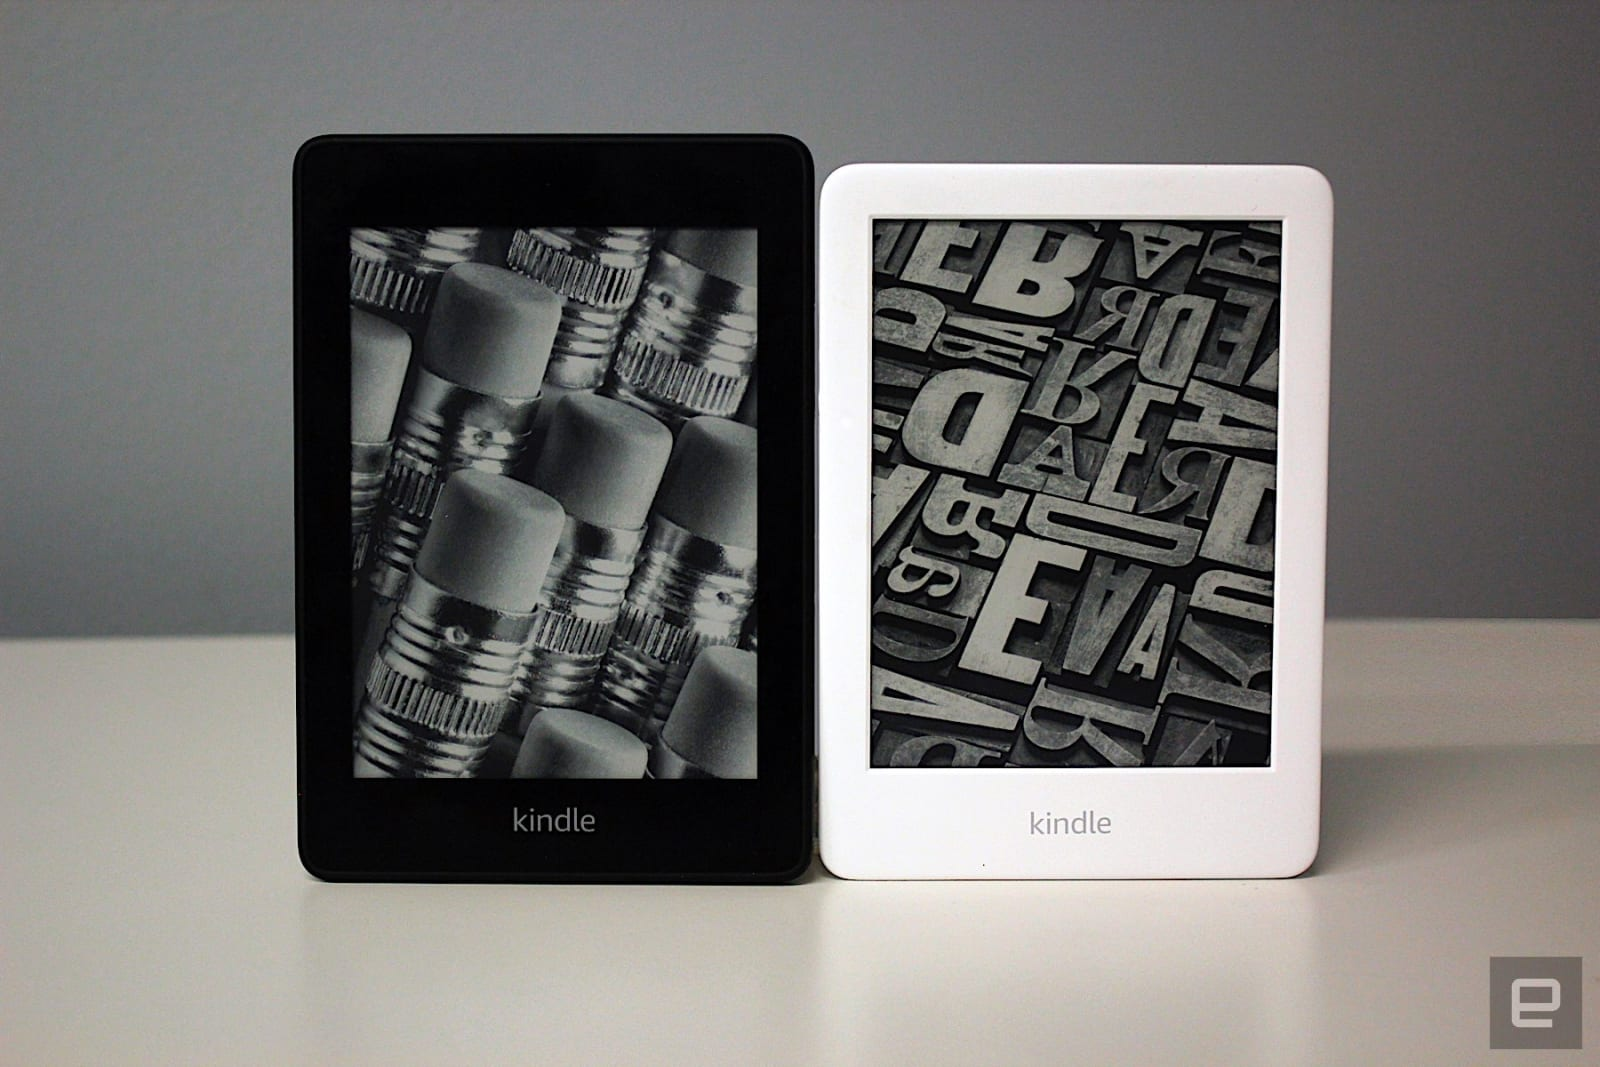 Amazon Kindle review (2019): The Paperwhite gets a run for